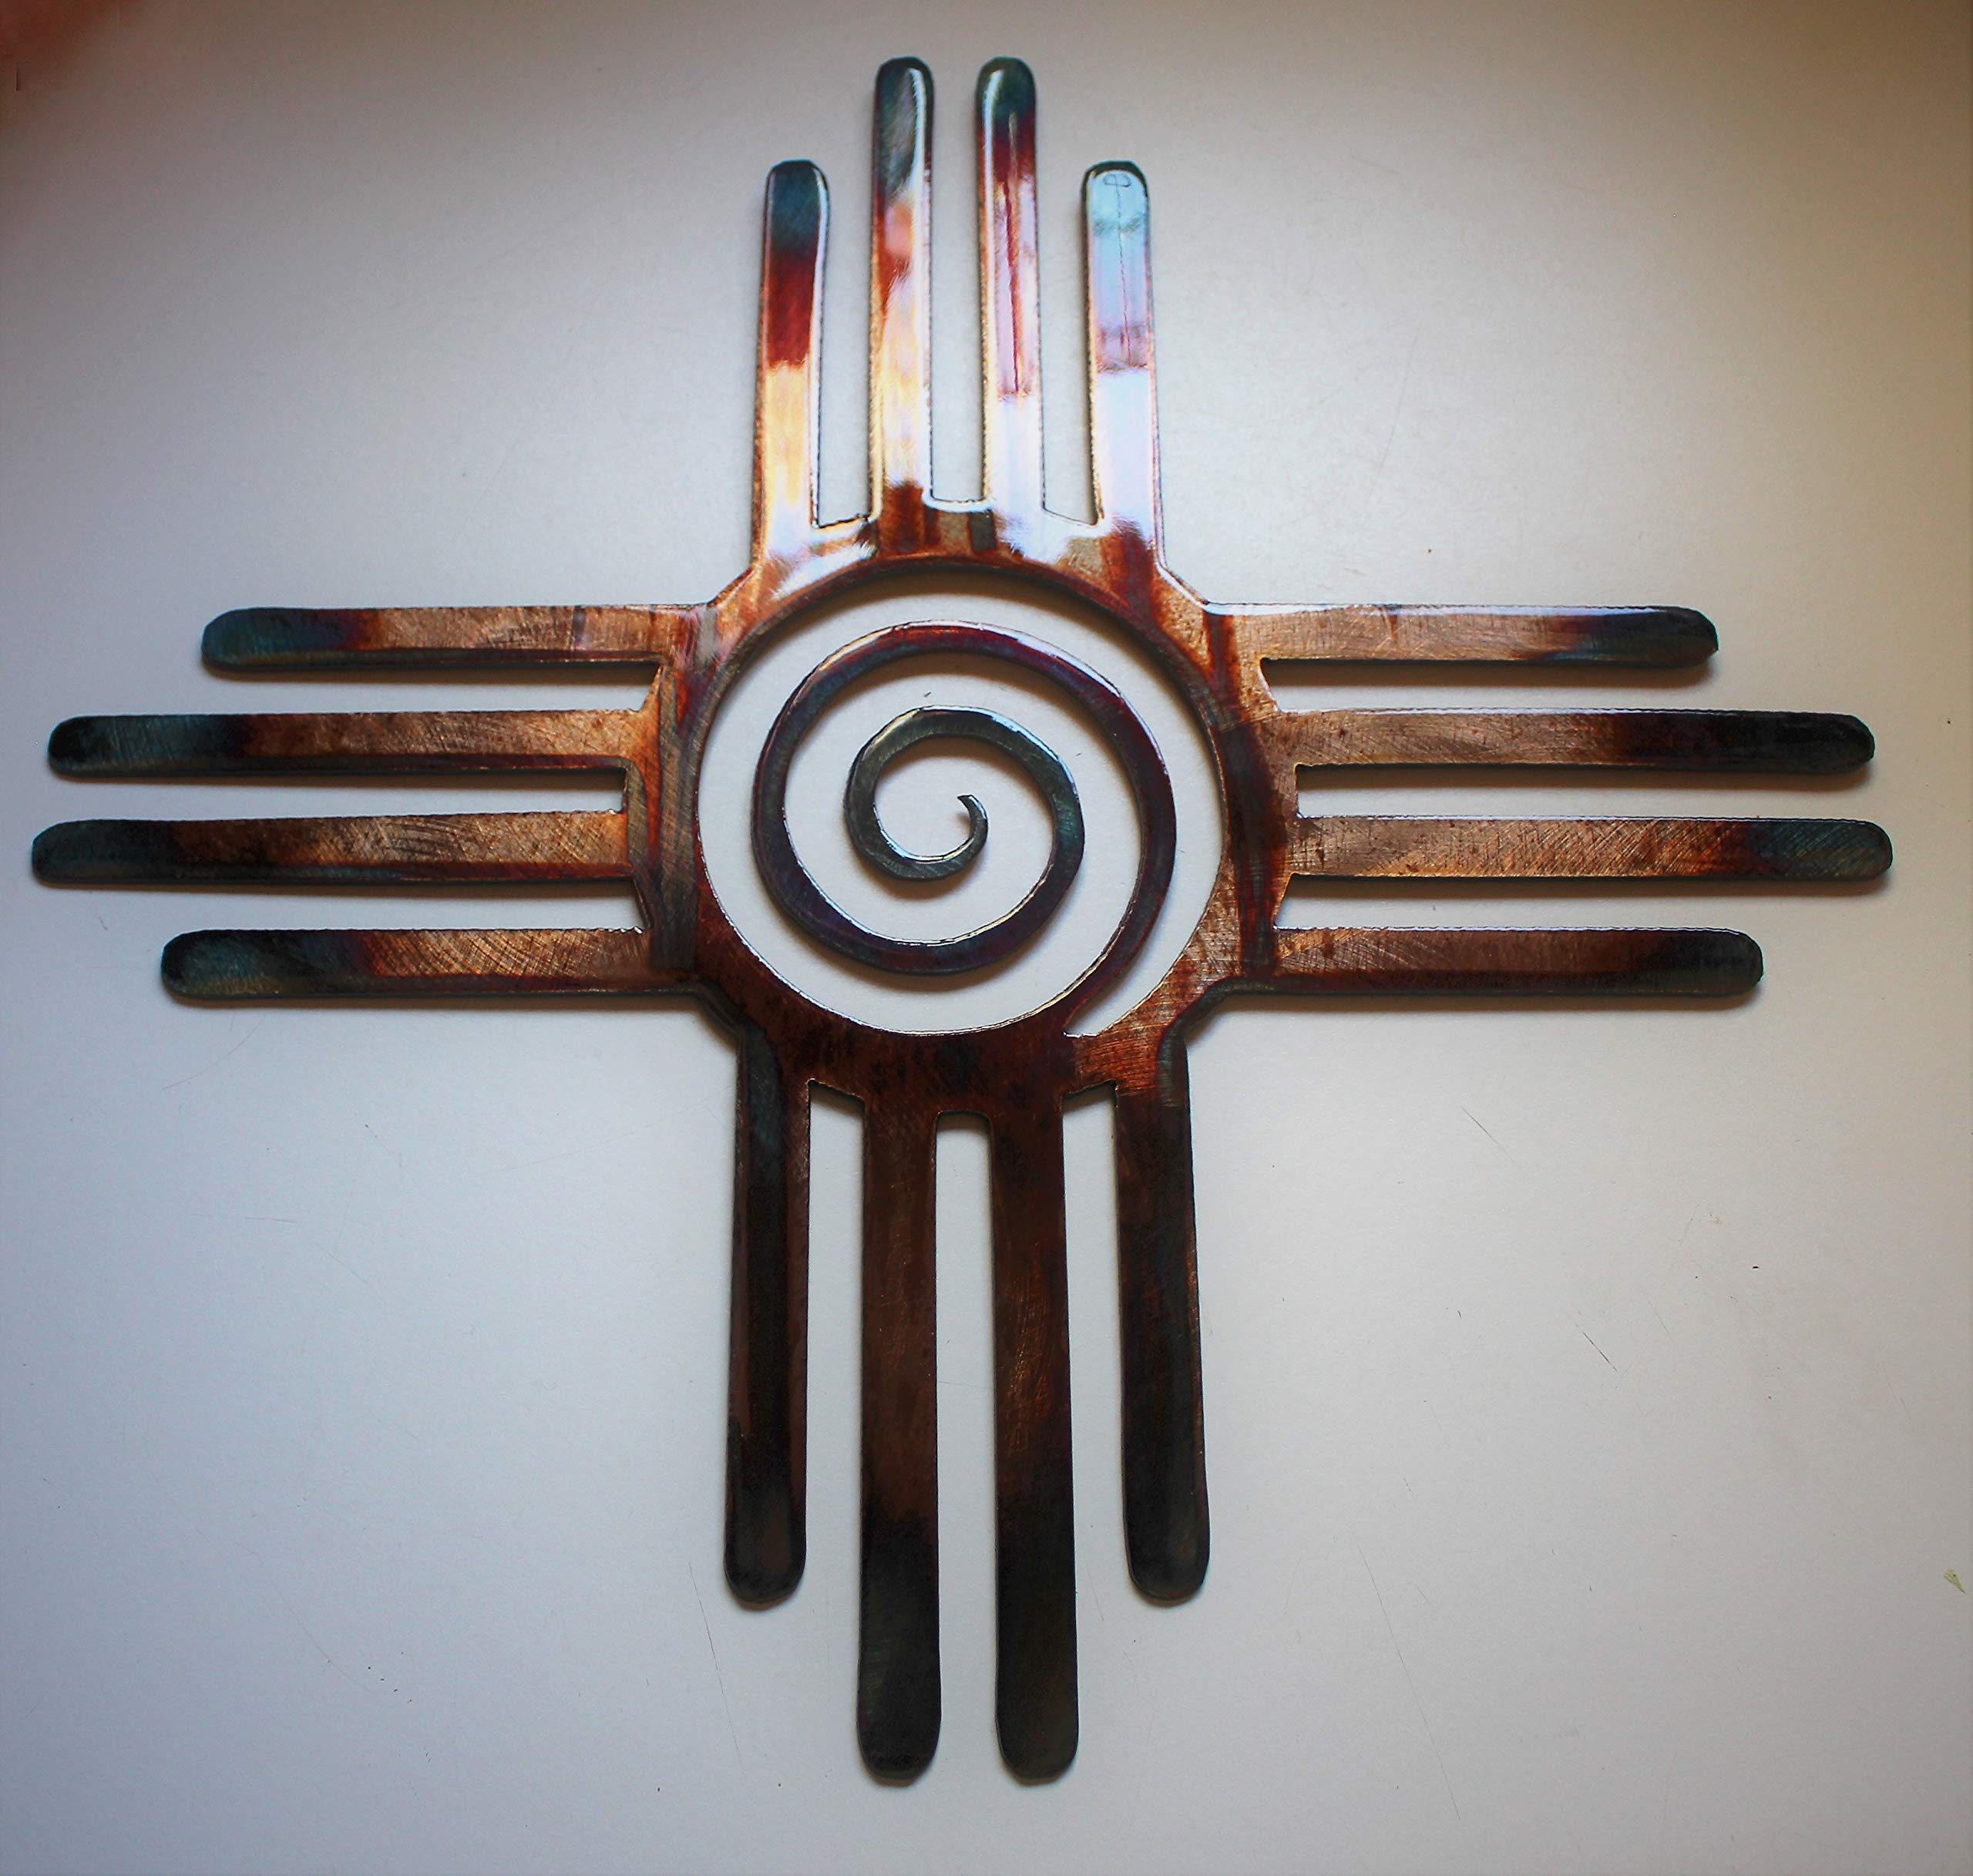 Southwestern Zia with Center Swirl Metal Wall Art Decor 14'', 24'' or 30'' by HG Artworks